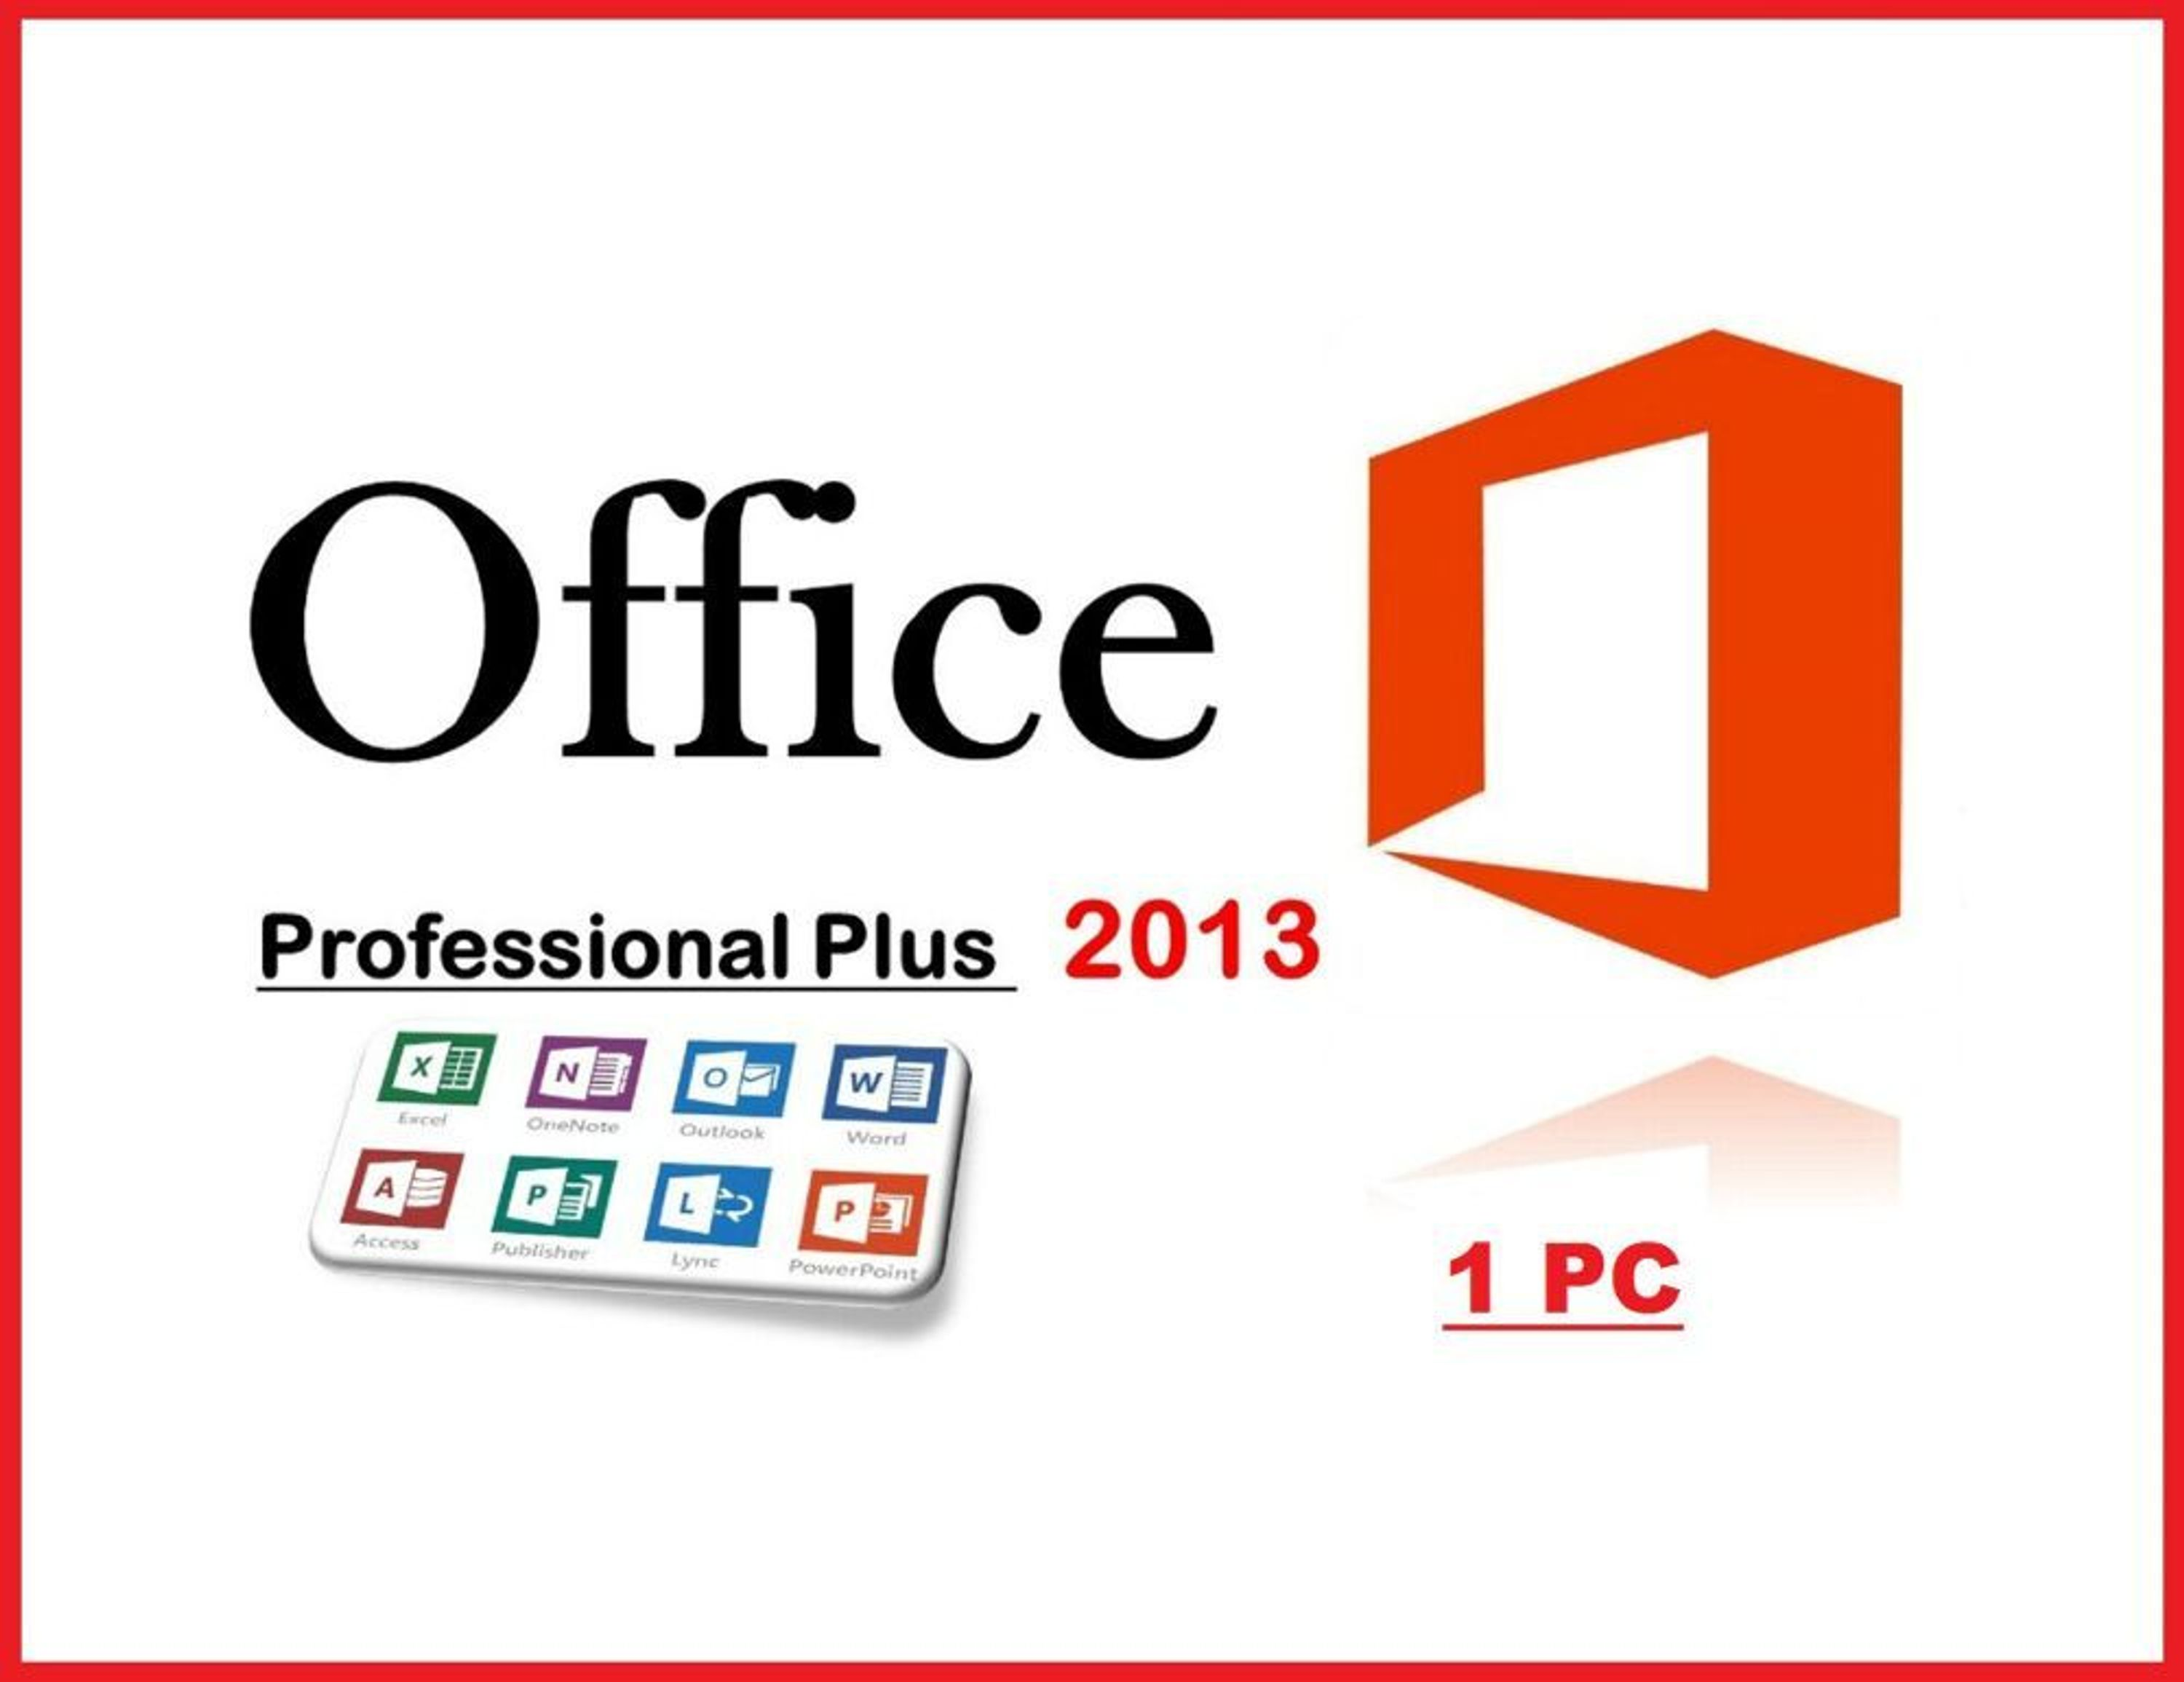 microsoft office 2013 professional plus 1 pc. Black Bedroom Furniture Sets. Home Design Ideas